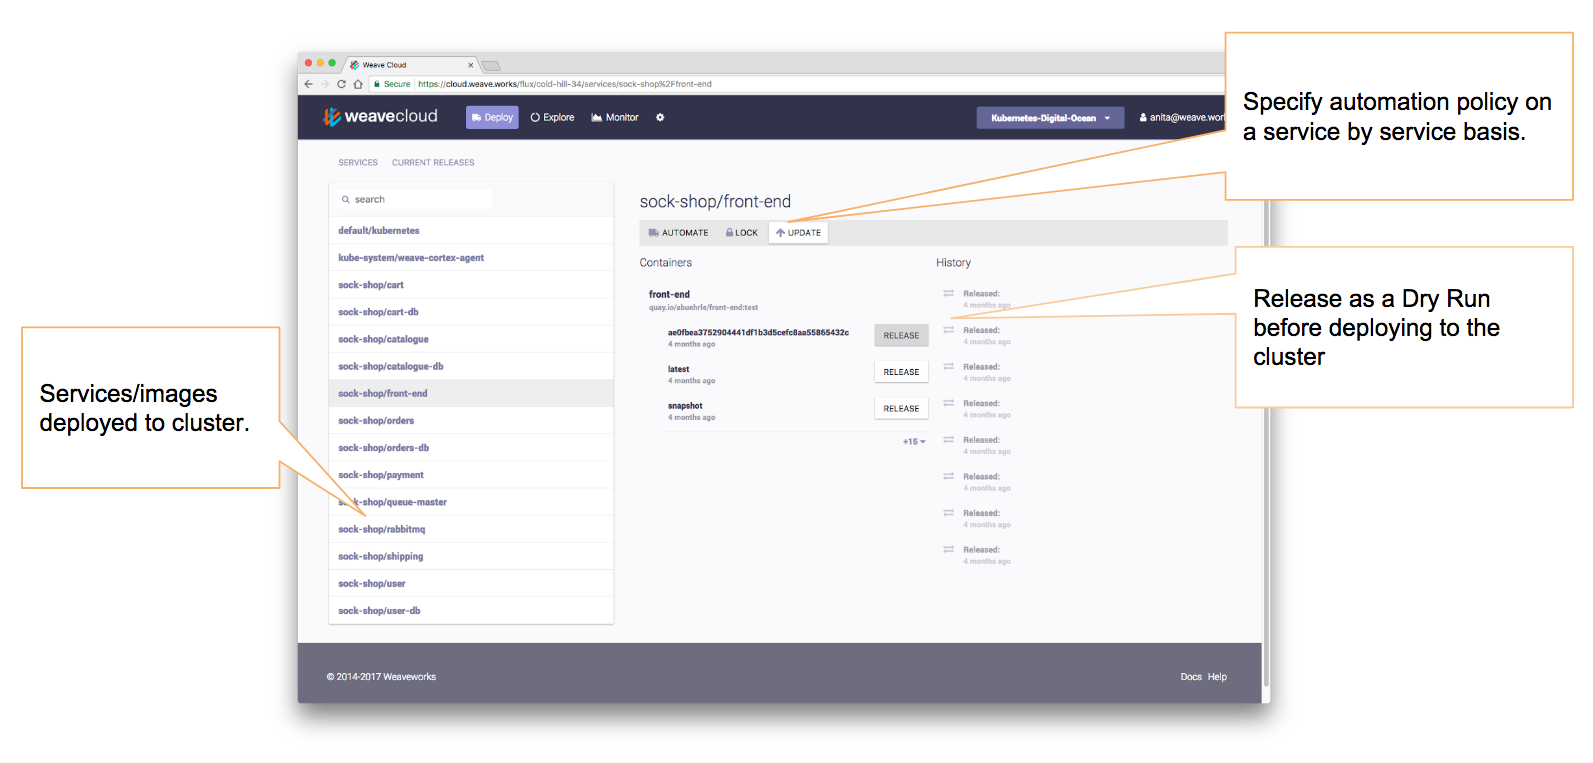 Managing & Automating Releases